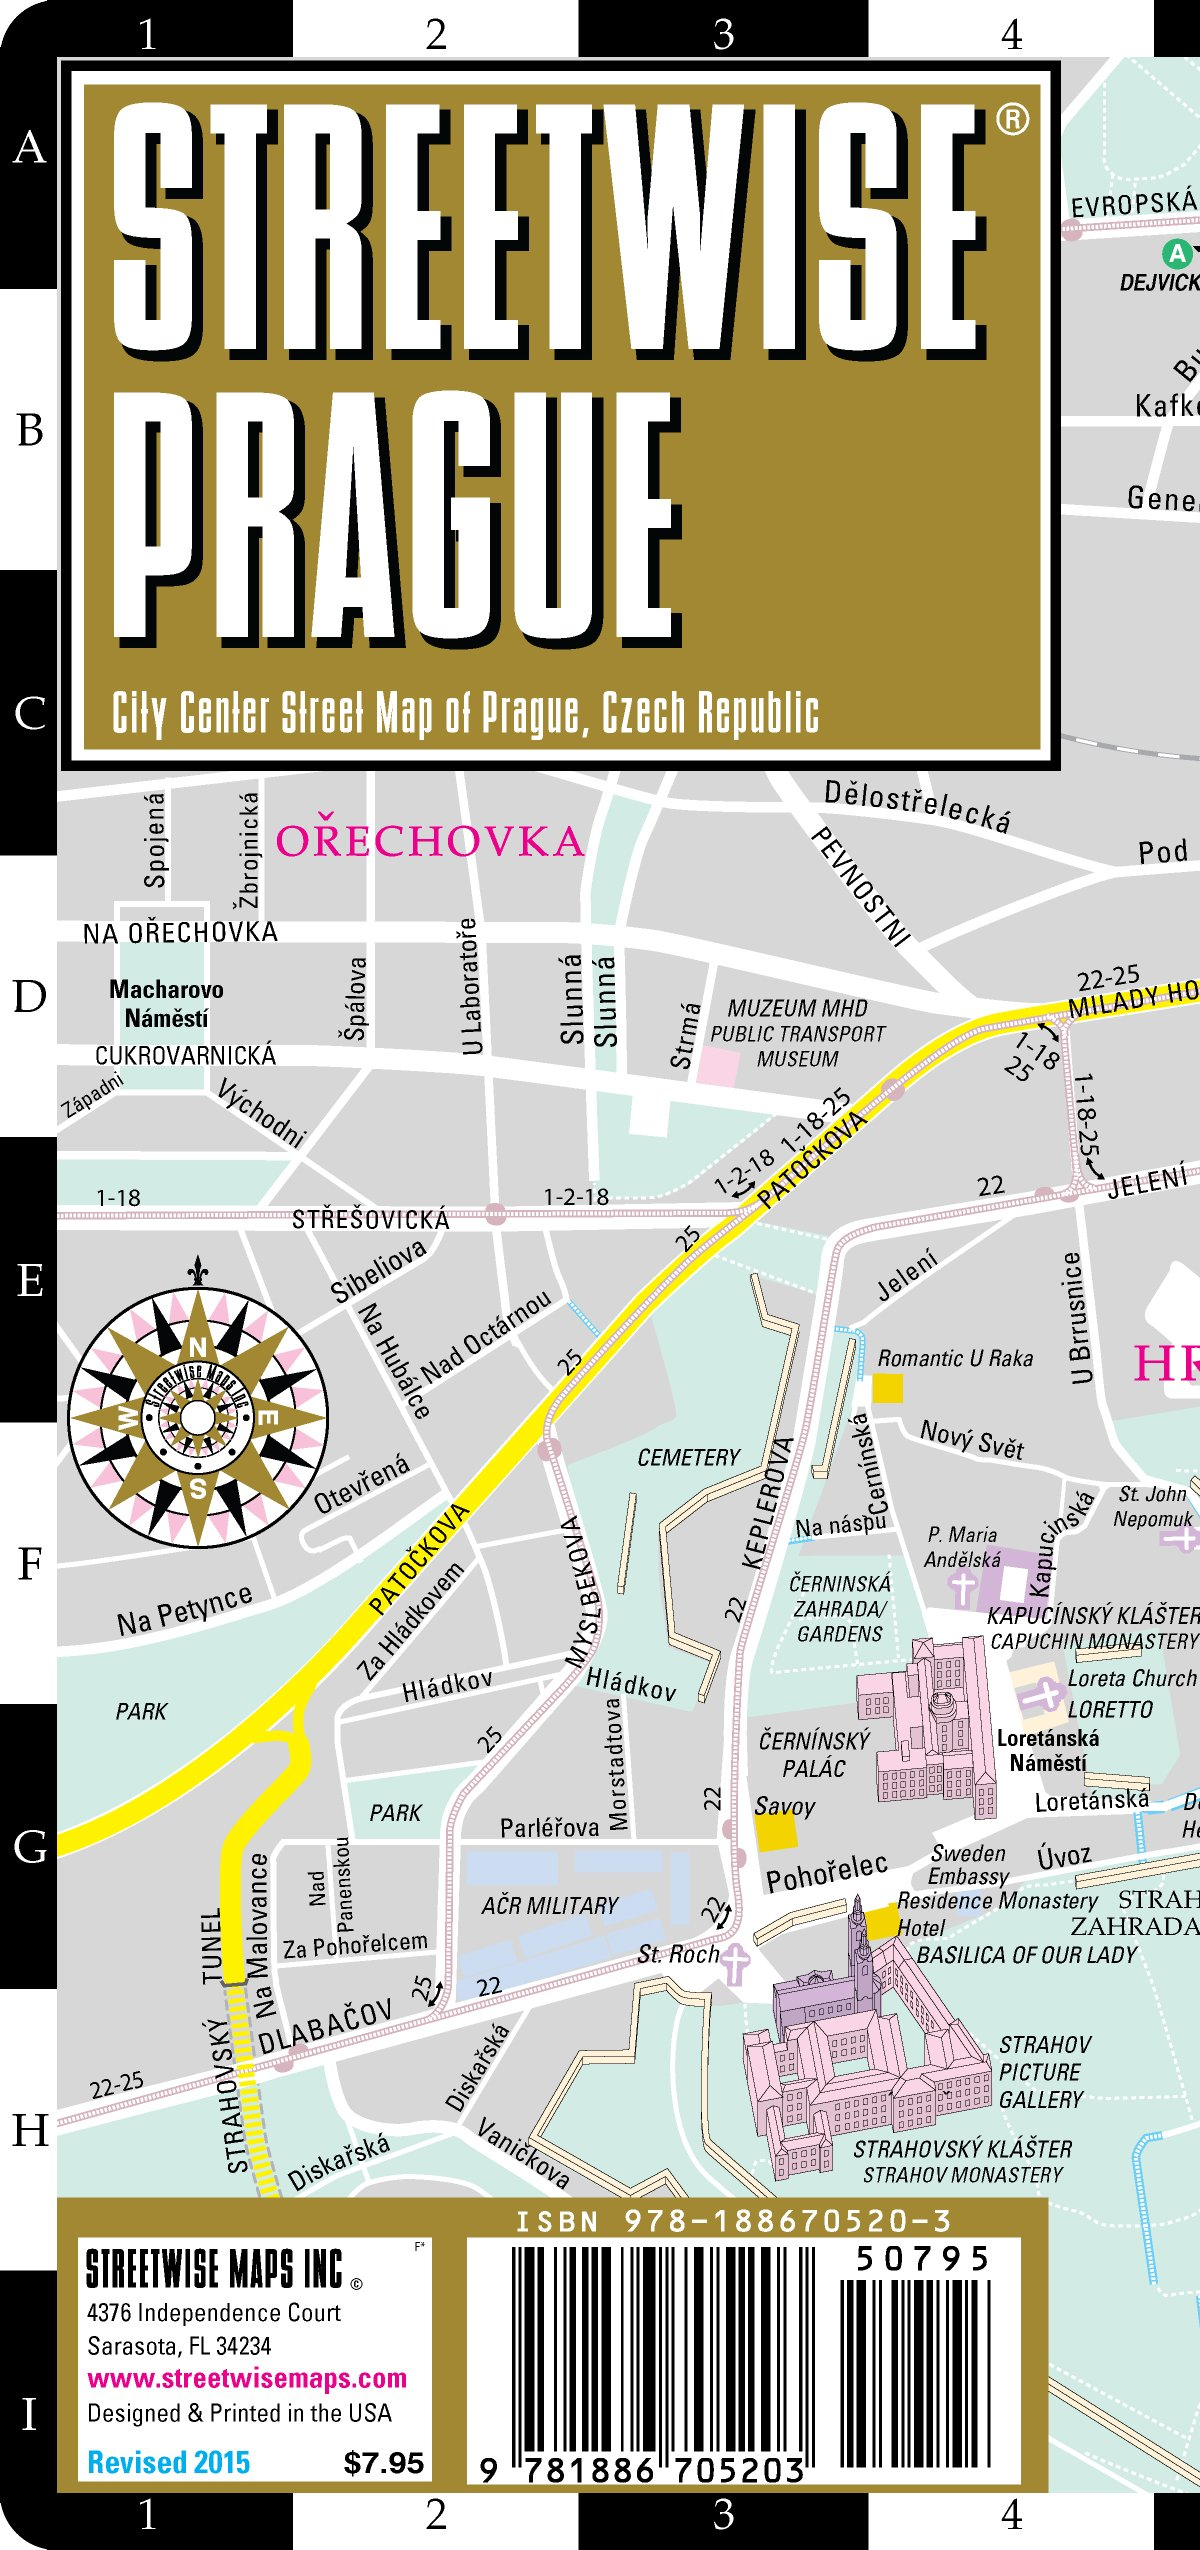 Streetwise Prague Map Laminated City Center Street Map of Prague